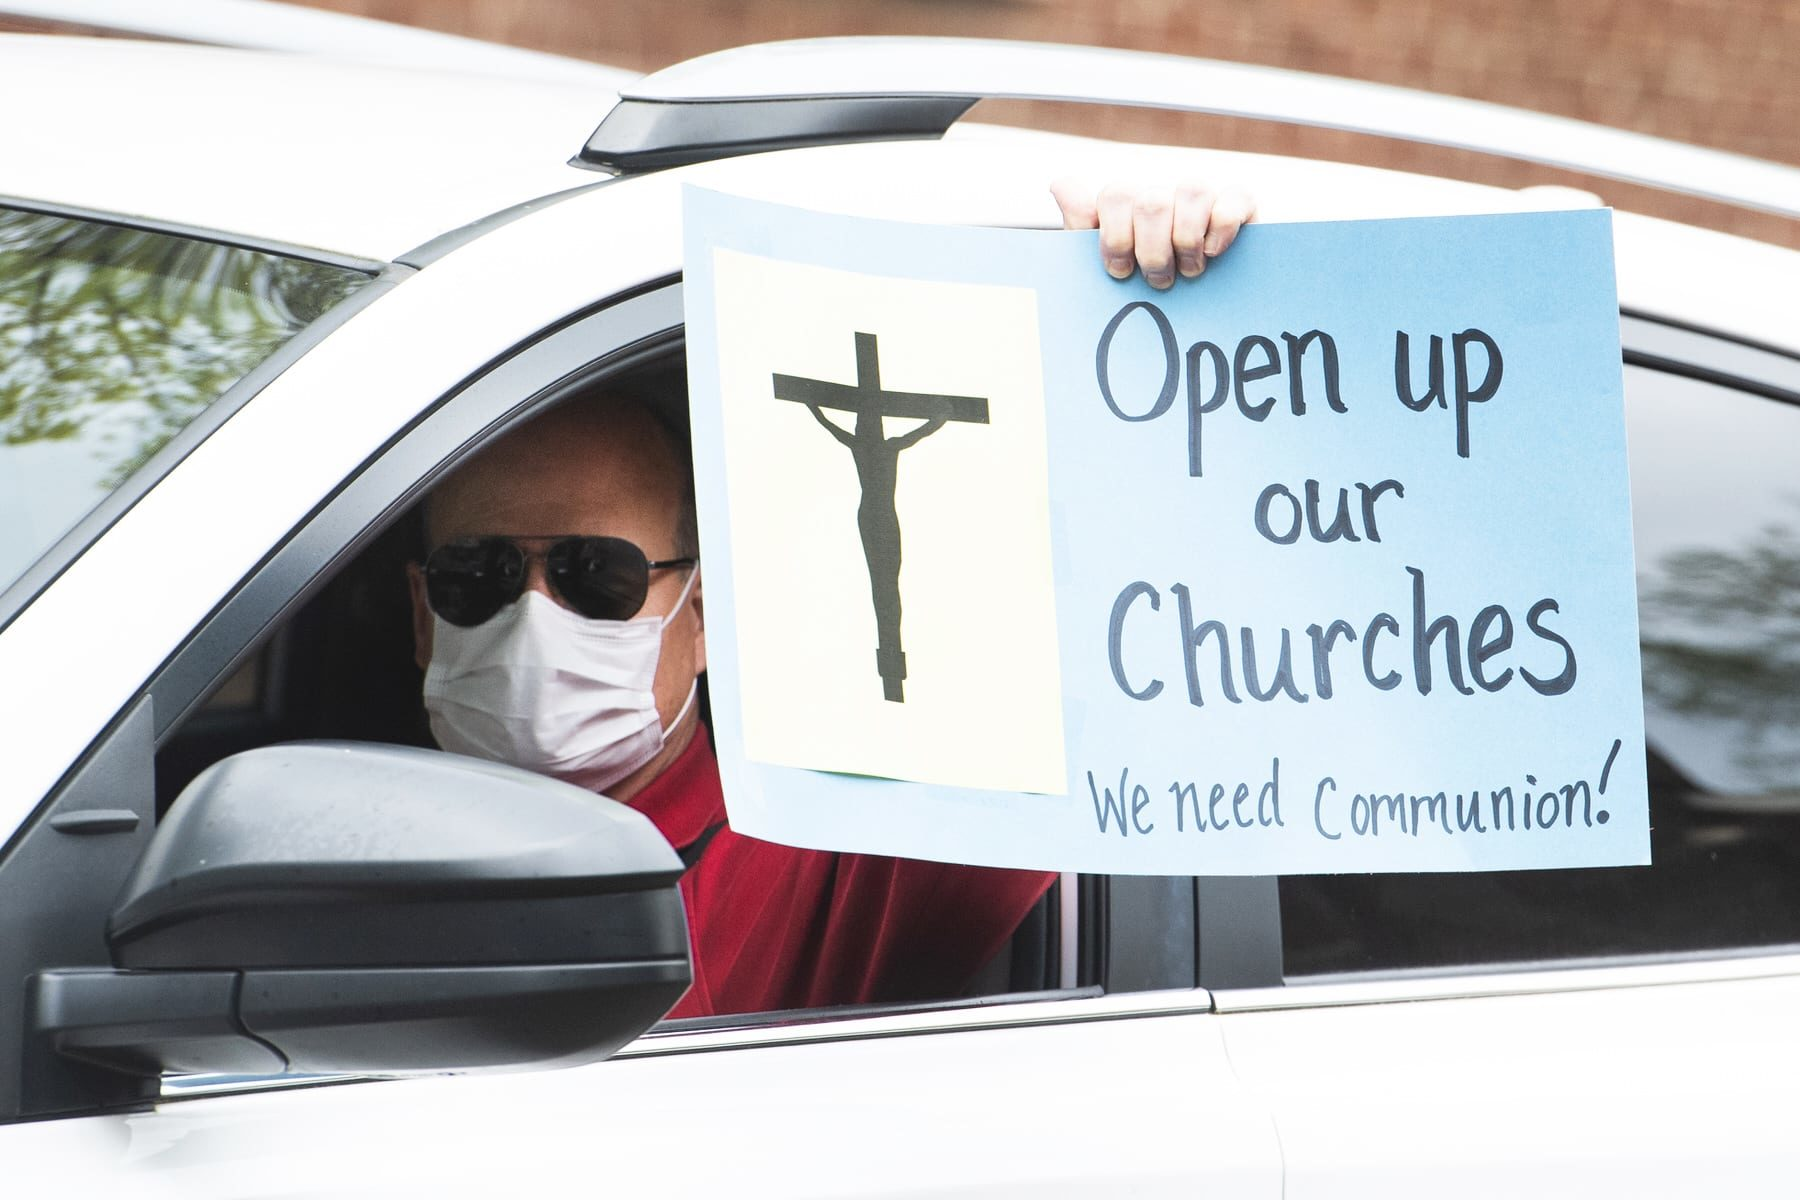 A demonstrators holding a sign out of a car window demanding restrictions that have closed churches be lifted.